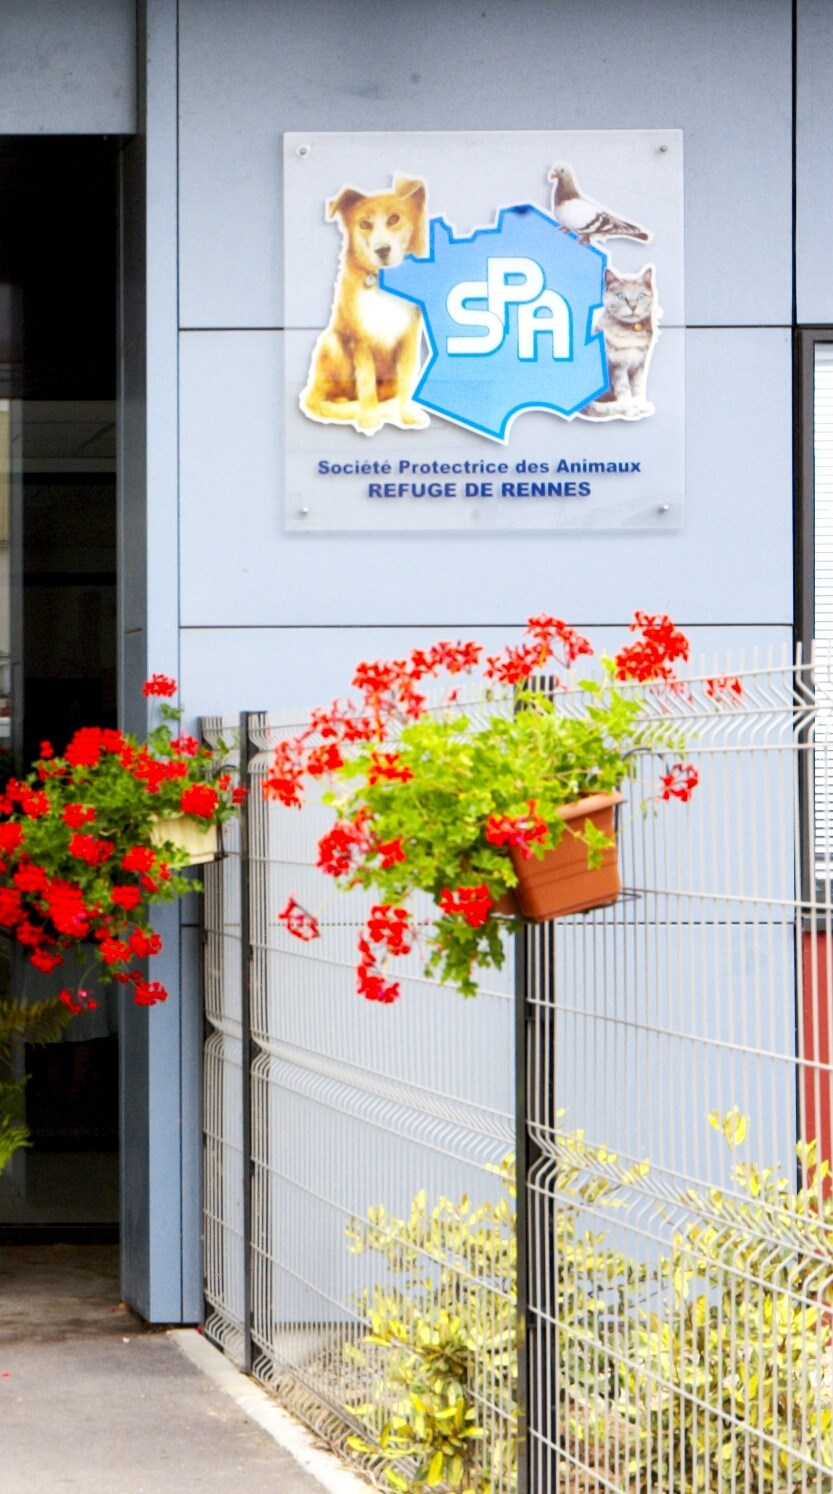 Portes ouvertes spa et animations 23 mai 2015 unidivers for Porte ouverte salon degermann